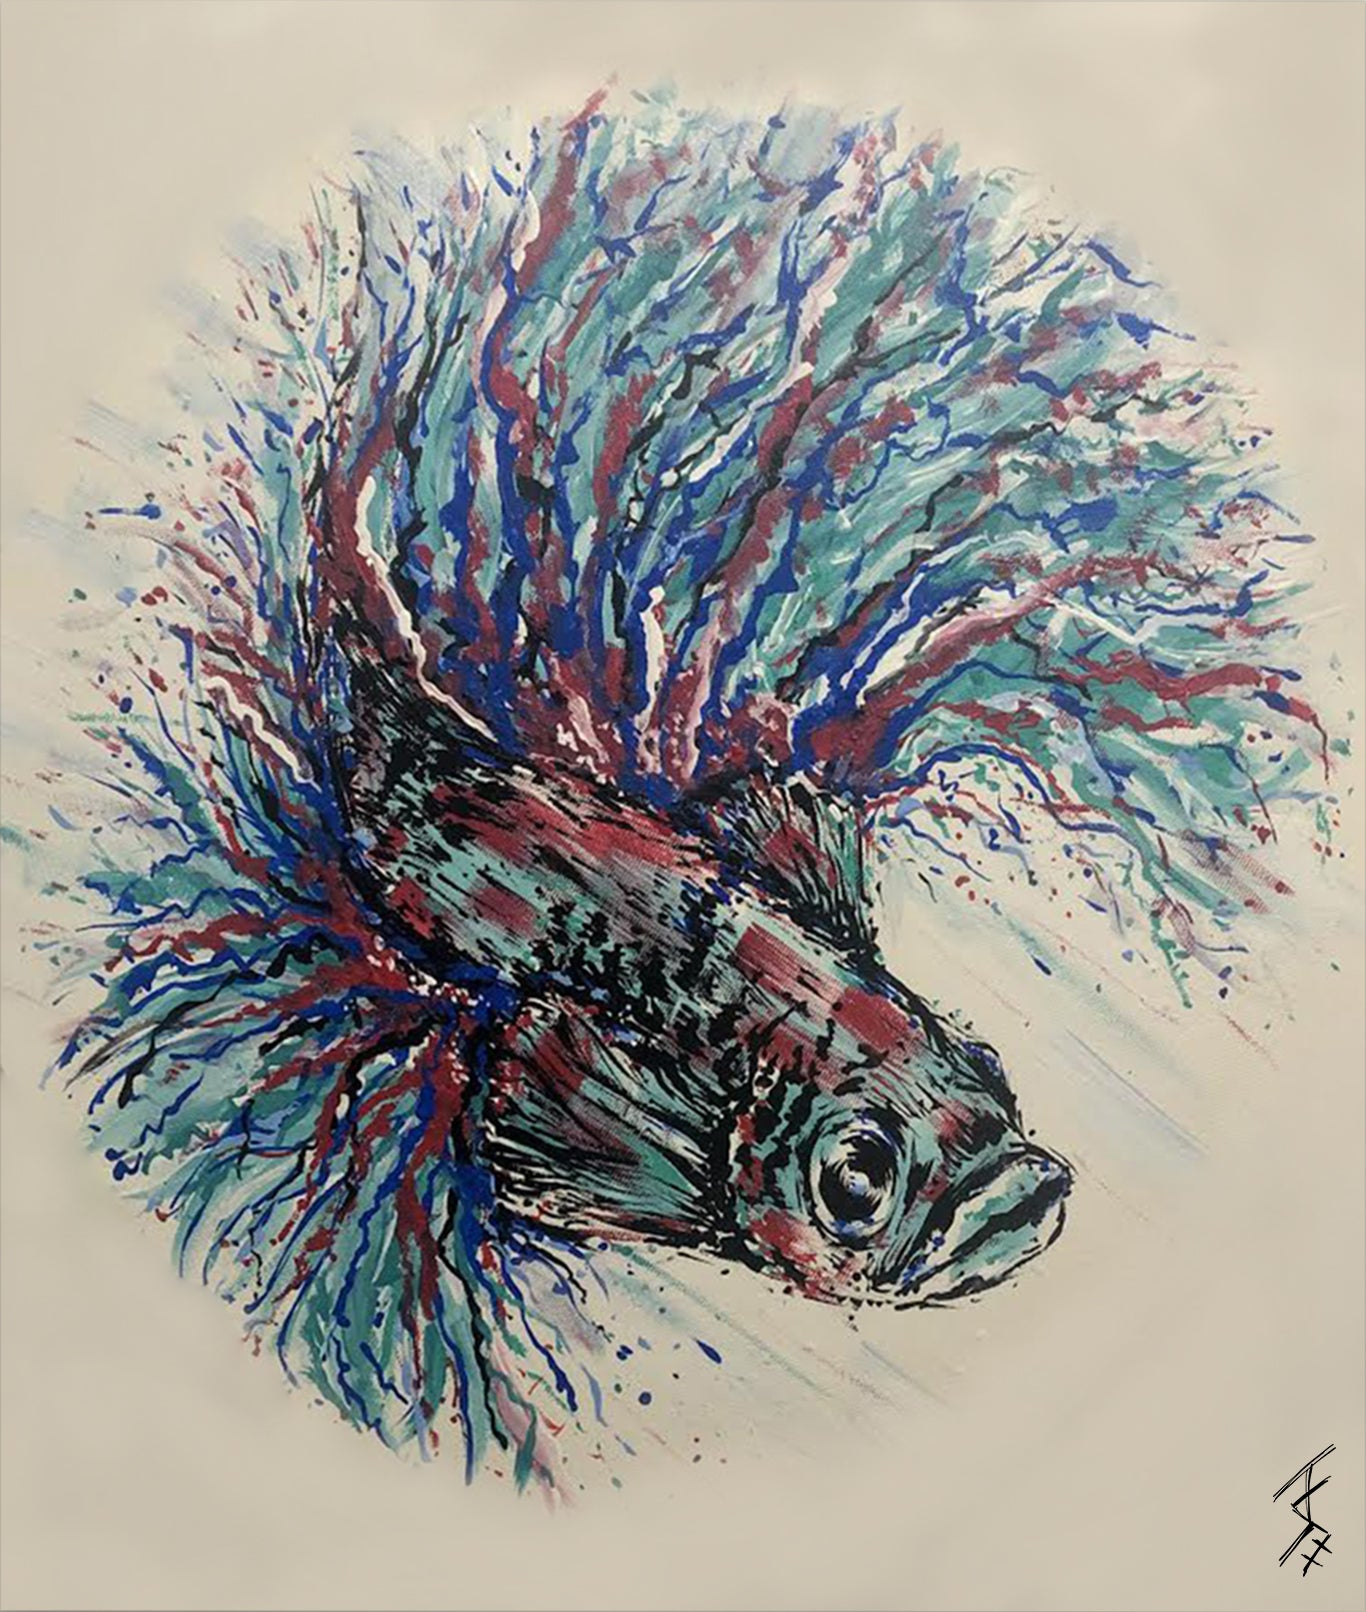 Limited Edition Poisson Panels - Price Includes Packaging & Delivery